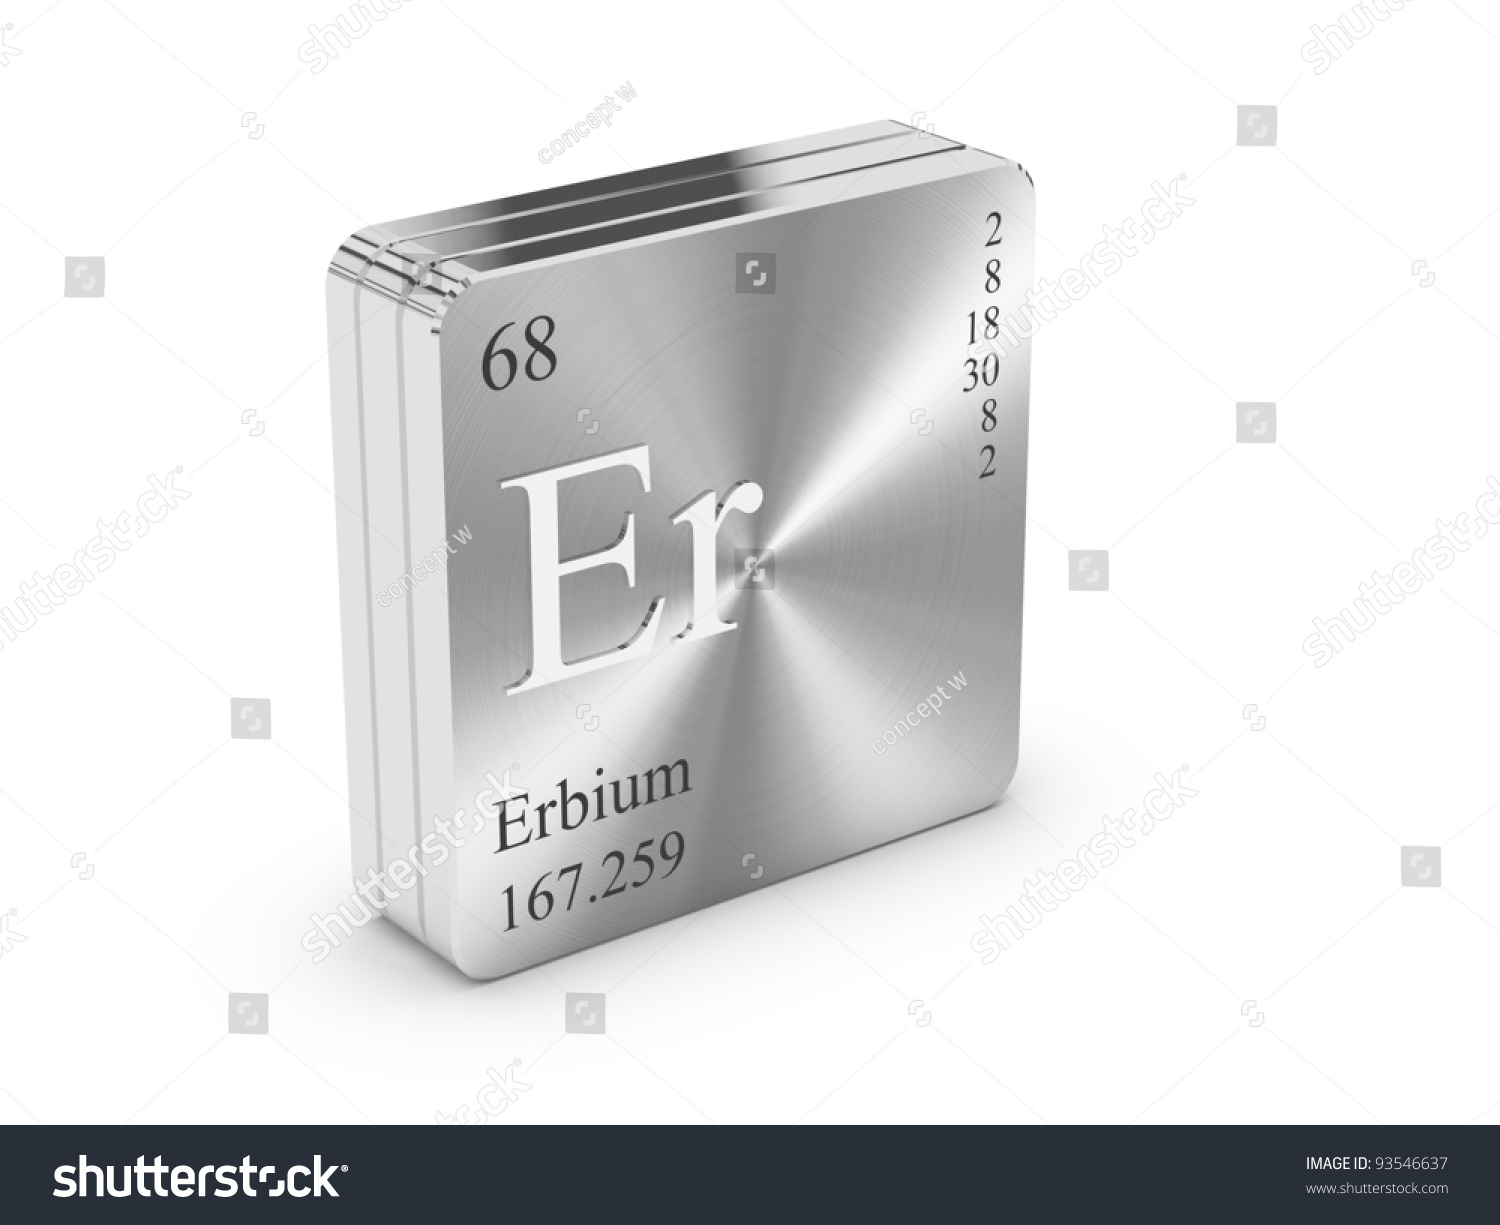 Erbium chemical element periodic table goodman wiring diagram ford erbium element periodic table on metal stock illustration 93546637 stock photo erbium element of the periodic gamestrikefo Choice Image